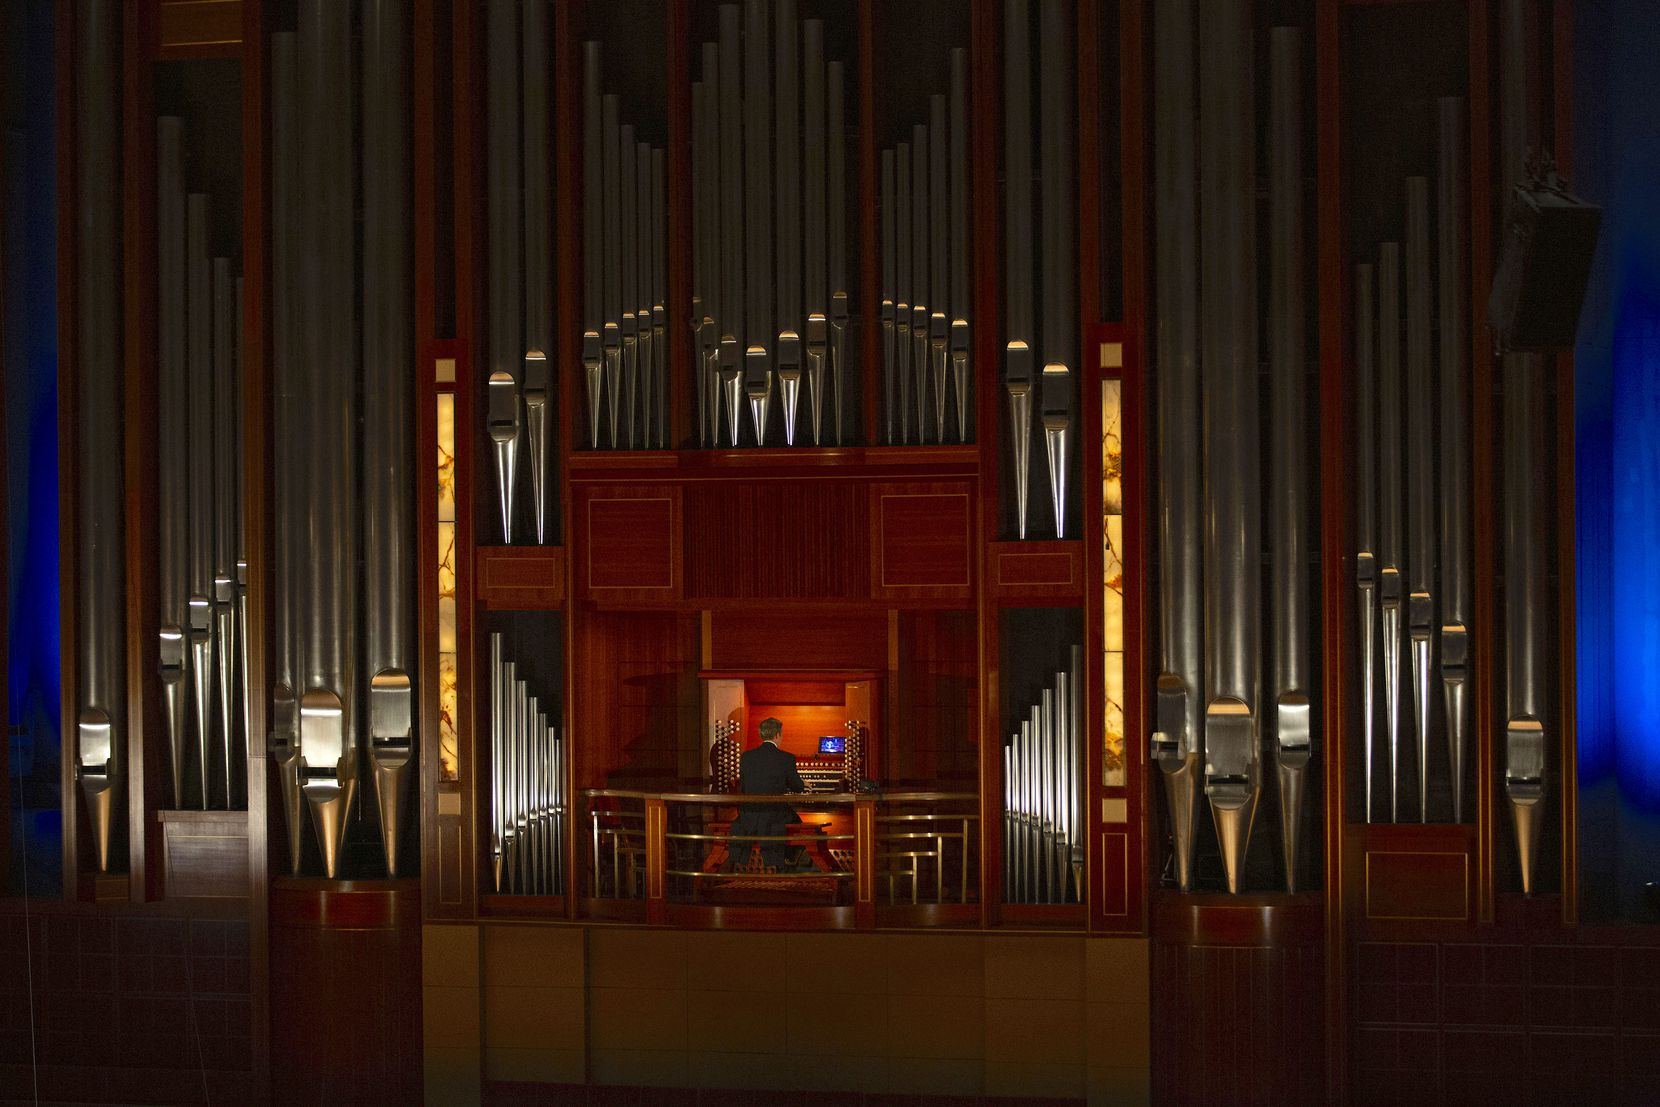 Bradley Hunter Welch plays the organ with Dallas Symphony Orchestra at Meyerson Symphony Center on May 20.